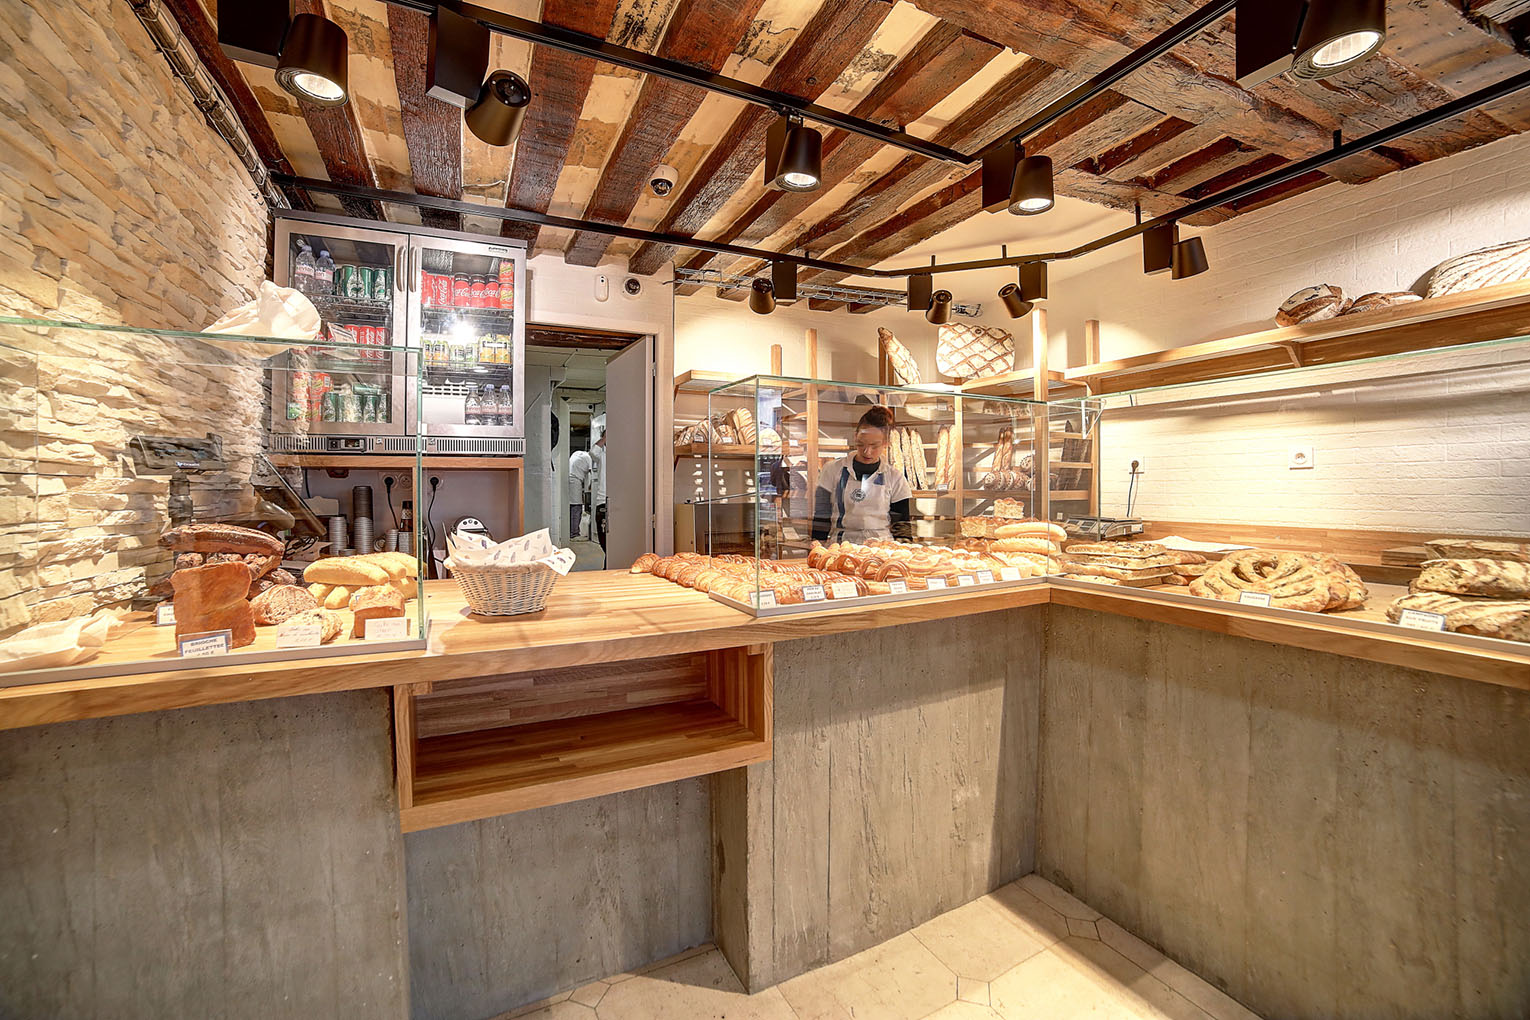 boulangerie_farineo25